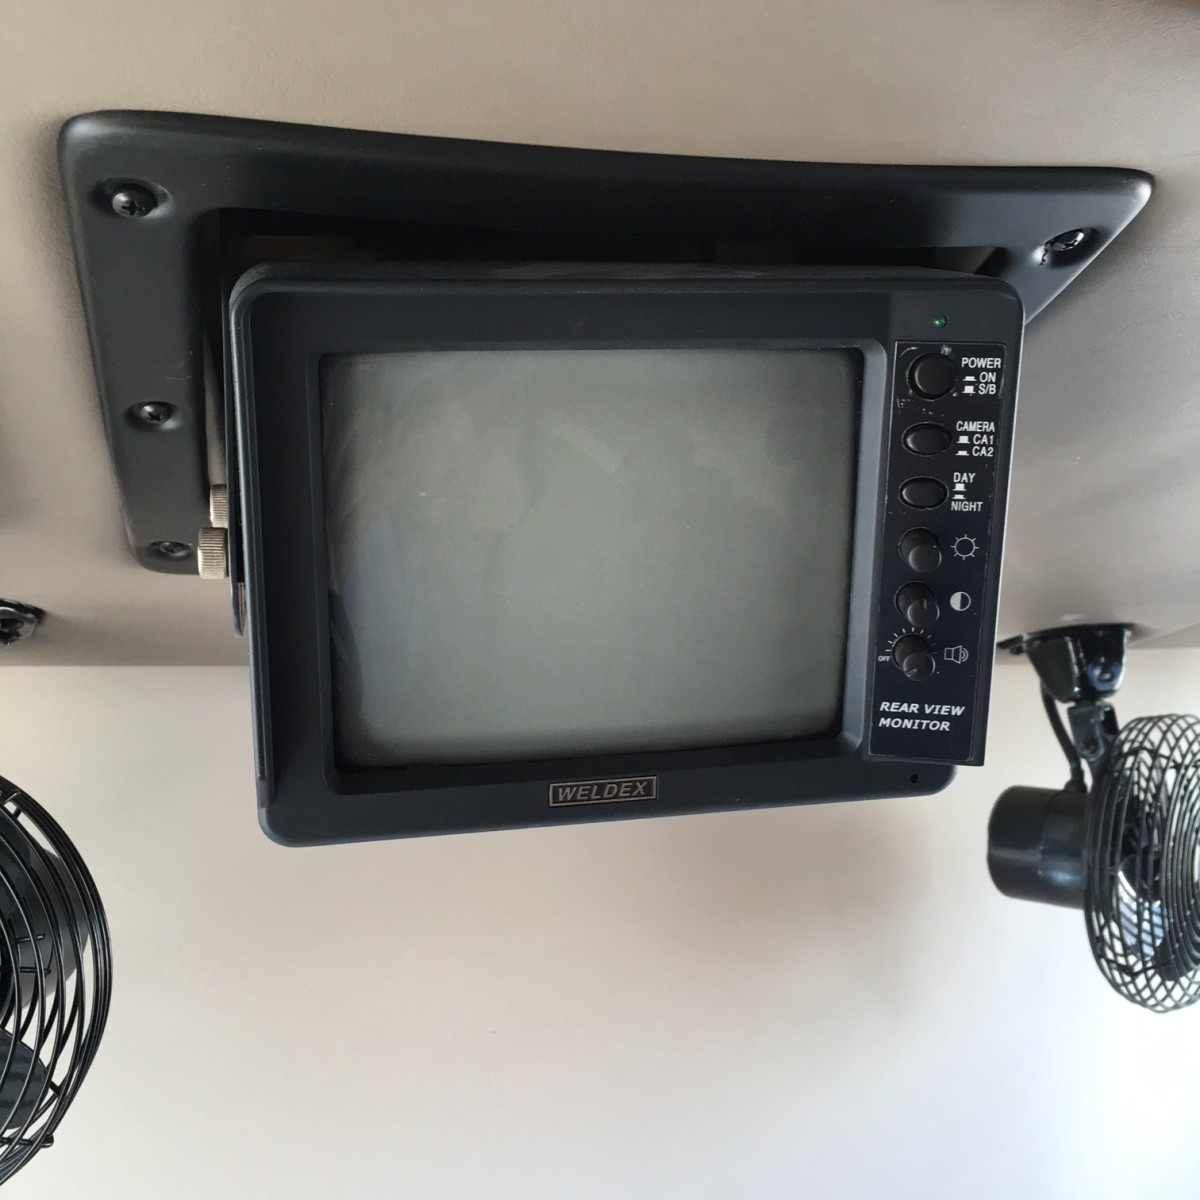 Older black-and-white rear monitor